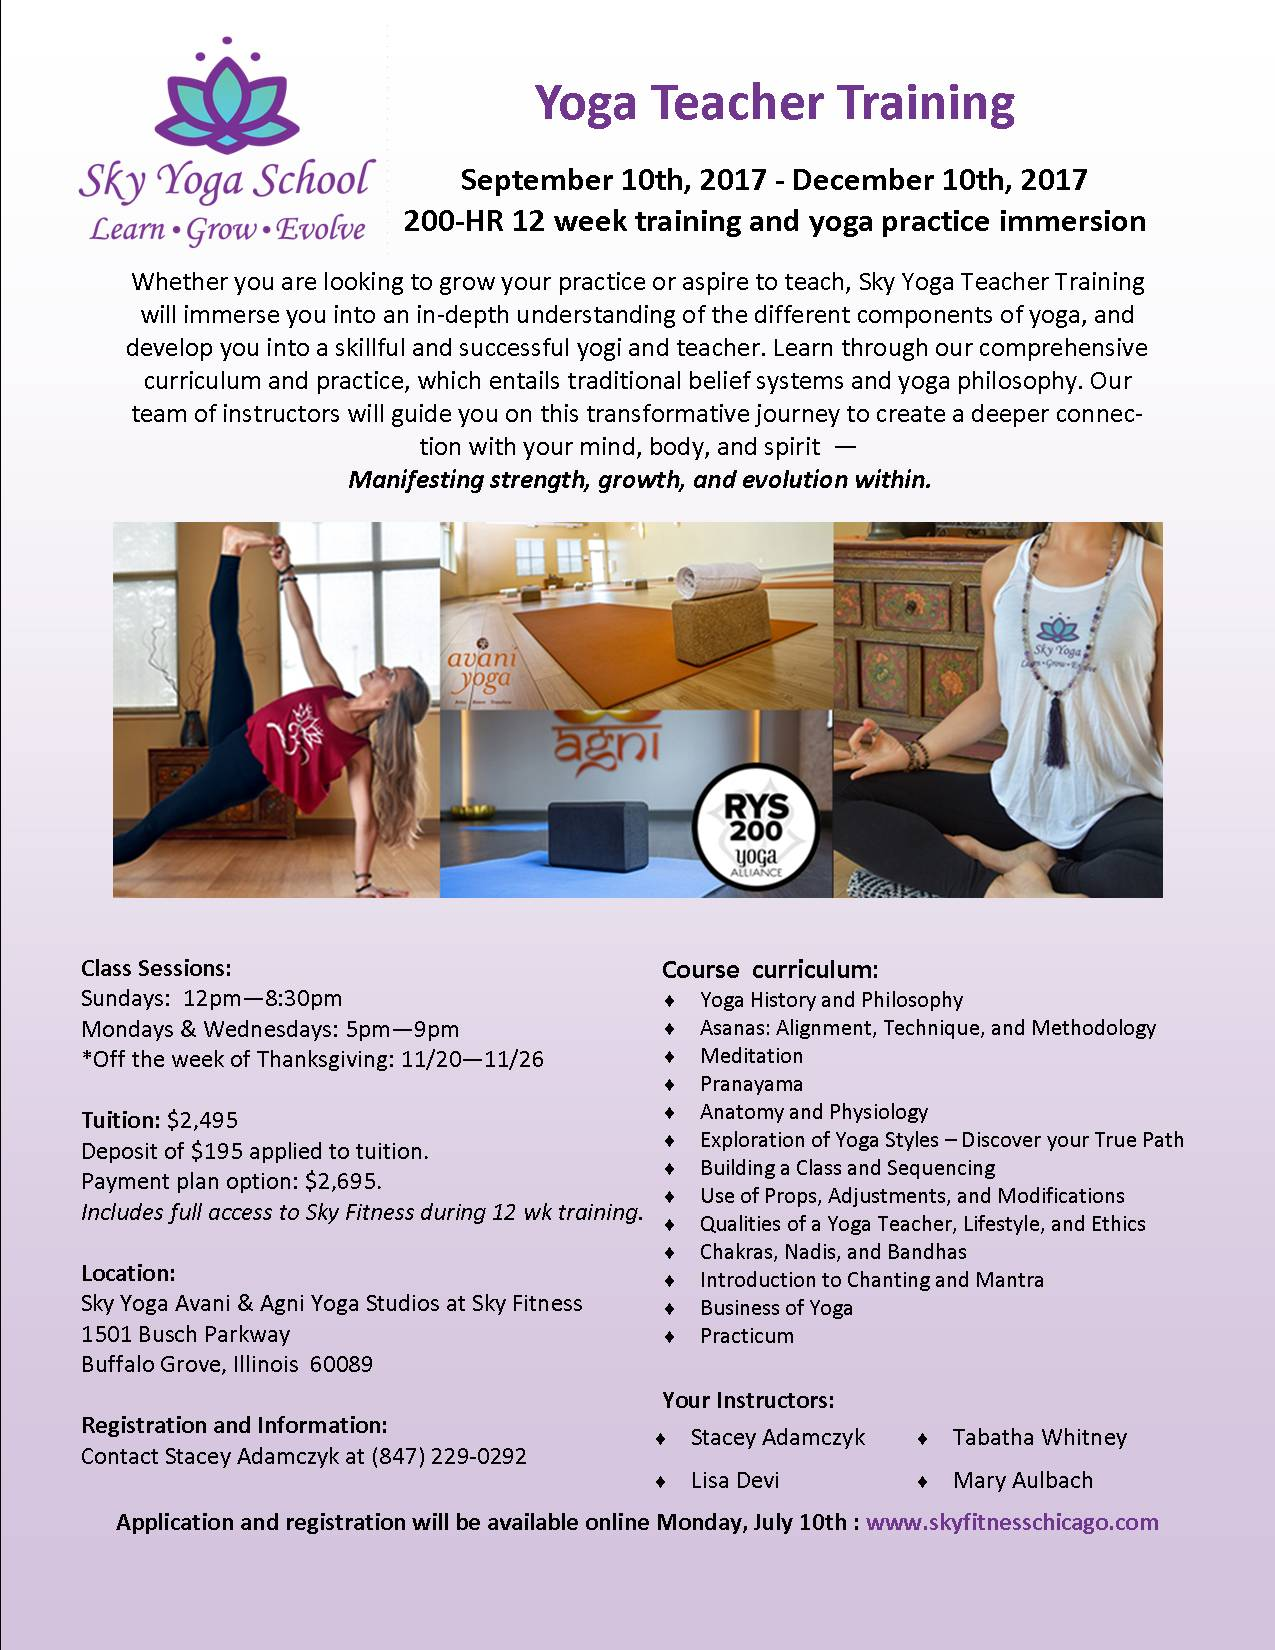 Sky Yoga School - 200 hr Teacher Training